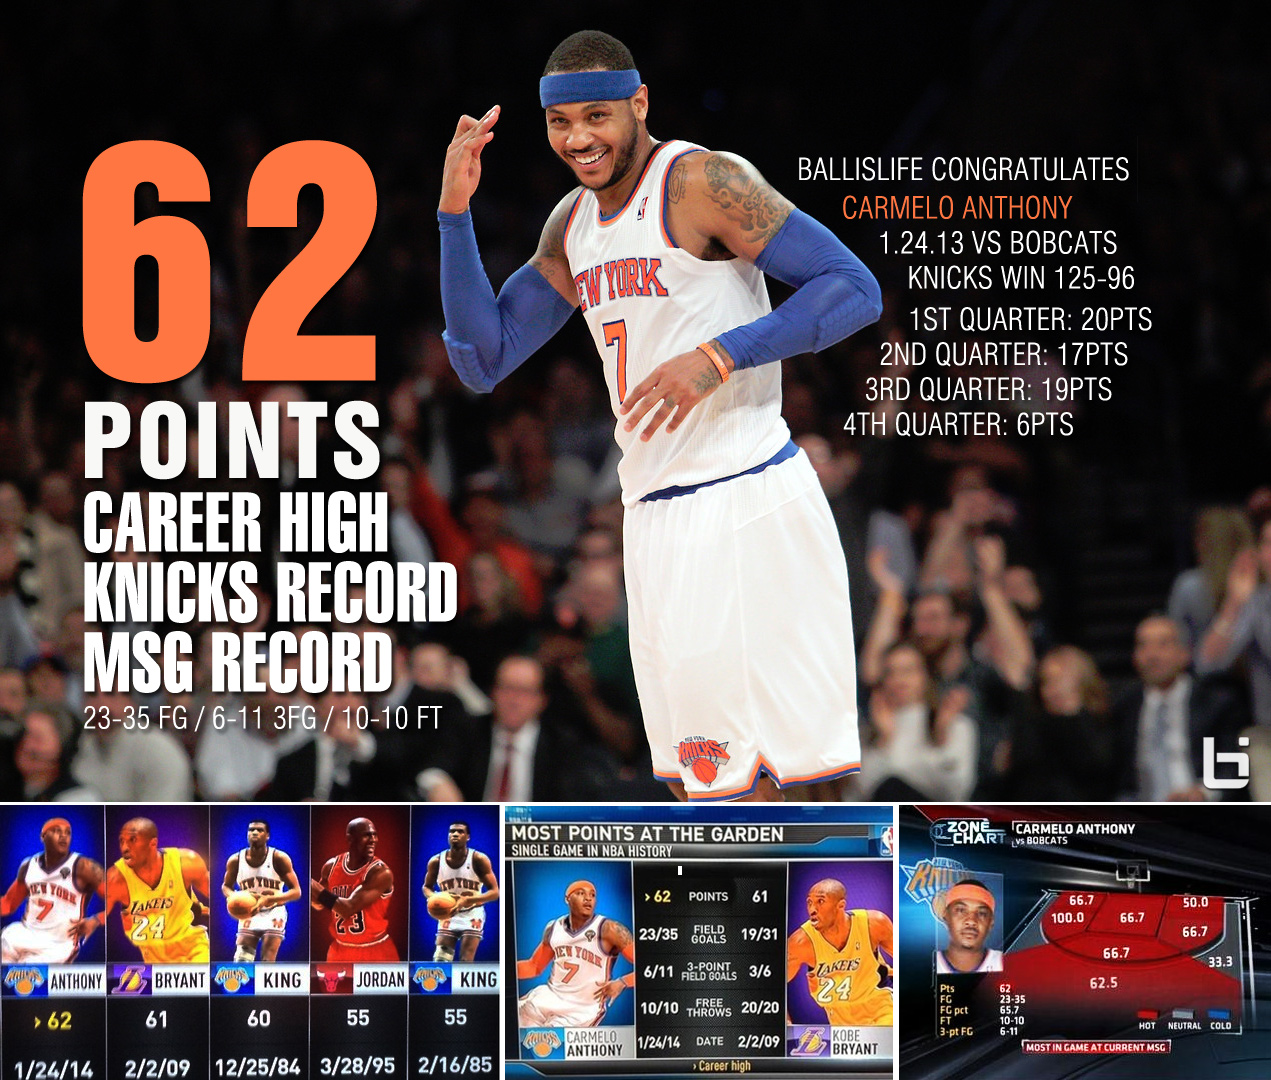 Carmelo Anthony career high